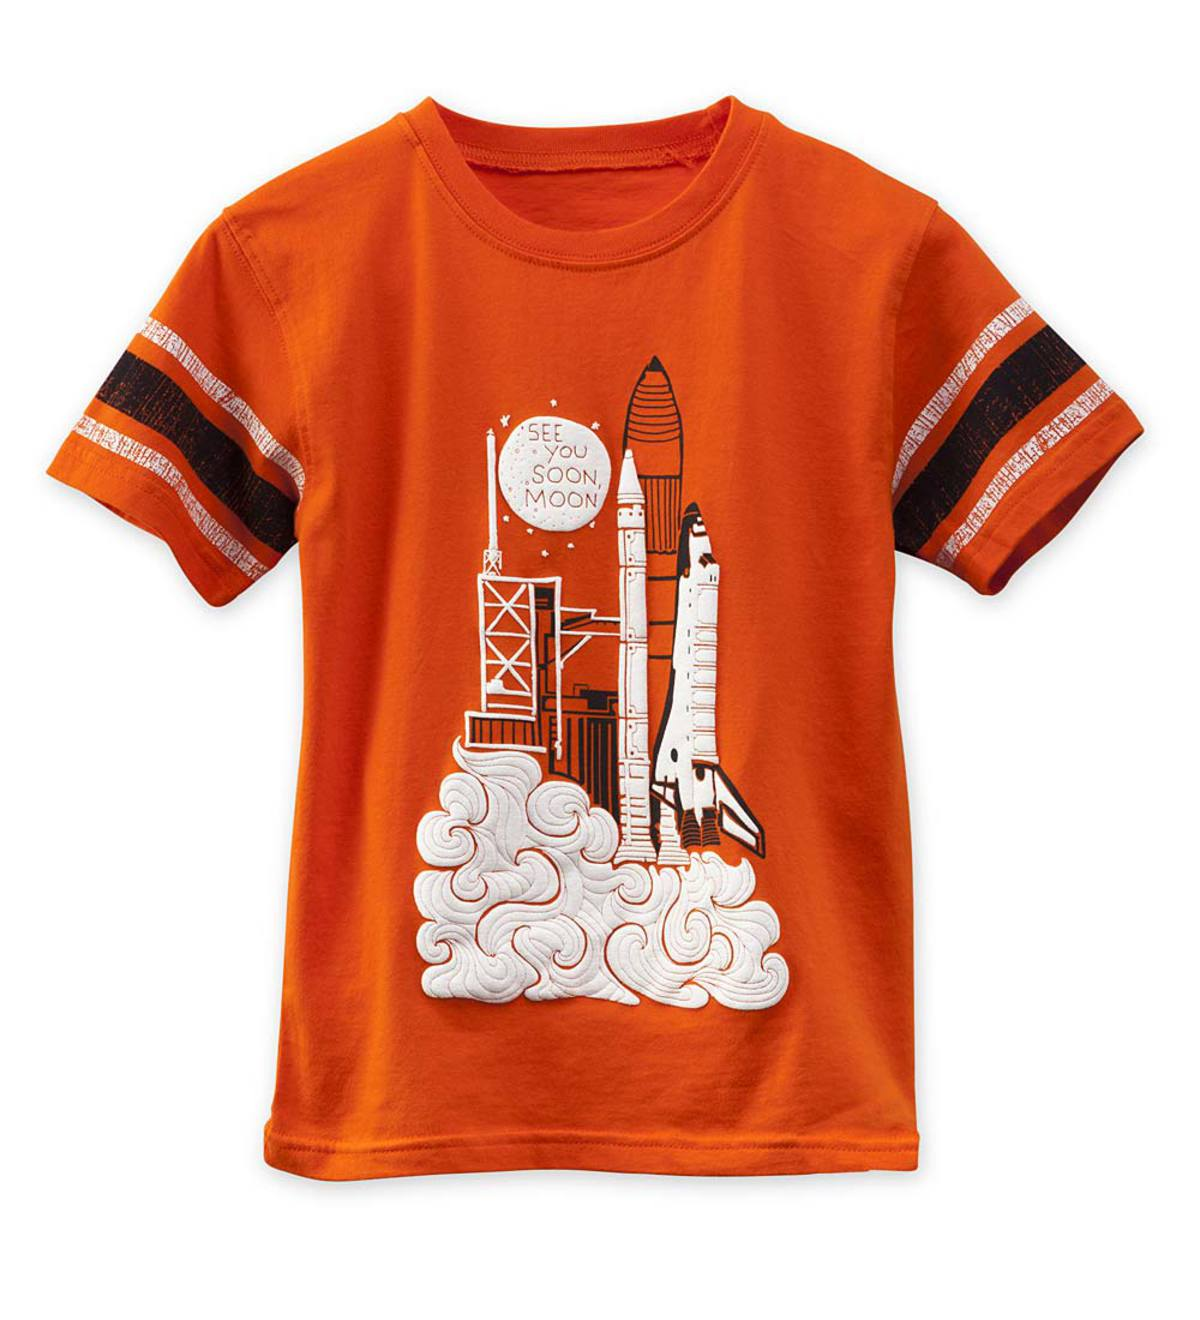 "Short Sleeve Rocket Ship ""See You Soon, Moon"" Graphic Tee - Orange - /12"